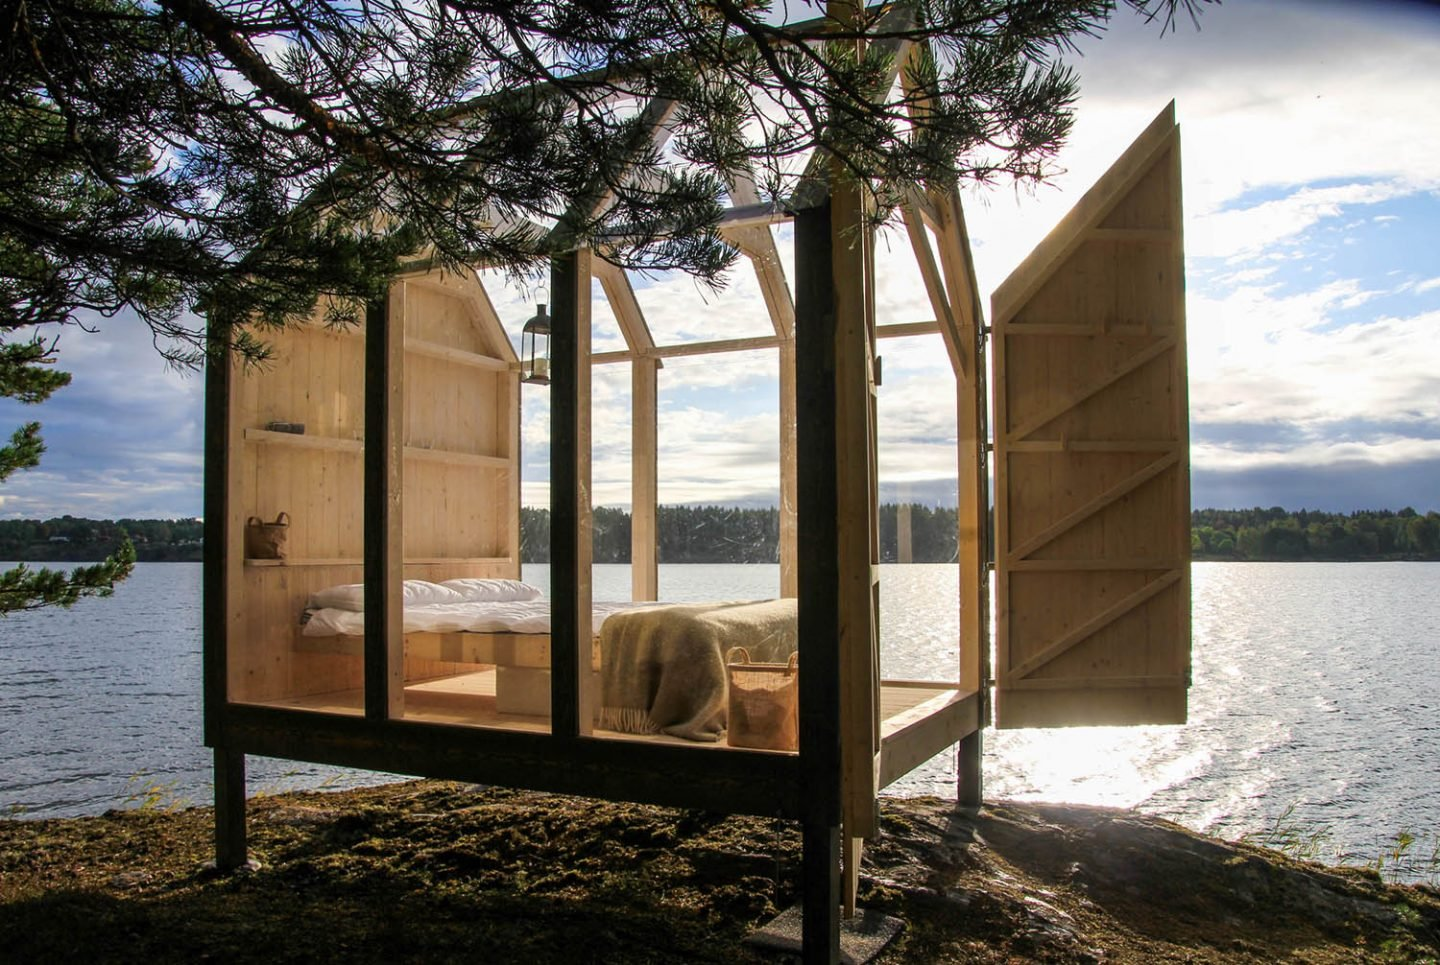 iGNANT_Architecture_72h_Cabin_JeanArch_11